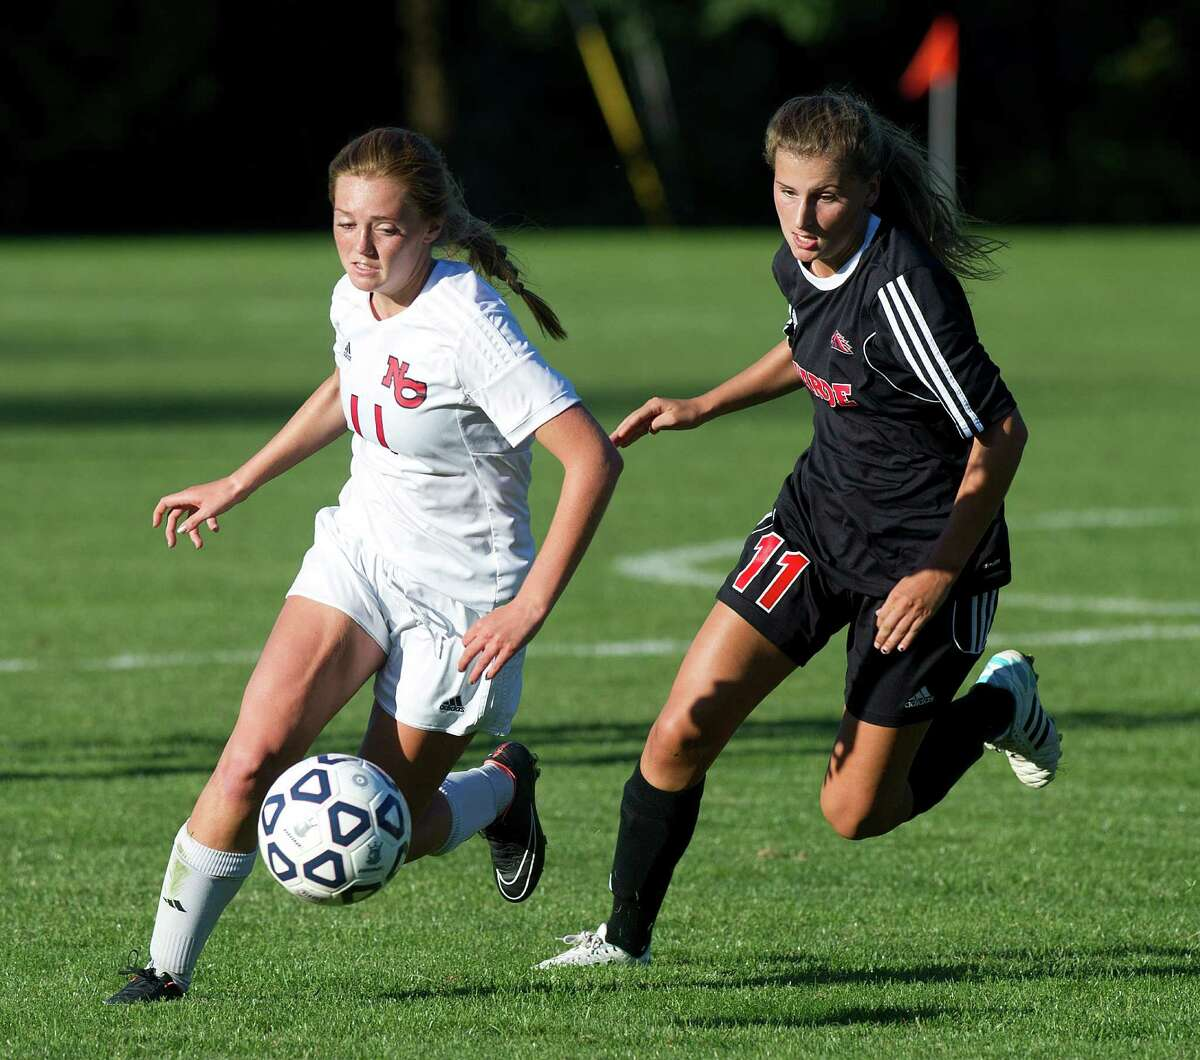 New Canaan's Kelly McClymonds, left, and Fairfield Warde's Hannah Allen, right, compete for control of the ball during a girls soccer game in New Canaan on Friday, Sept. 26.